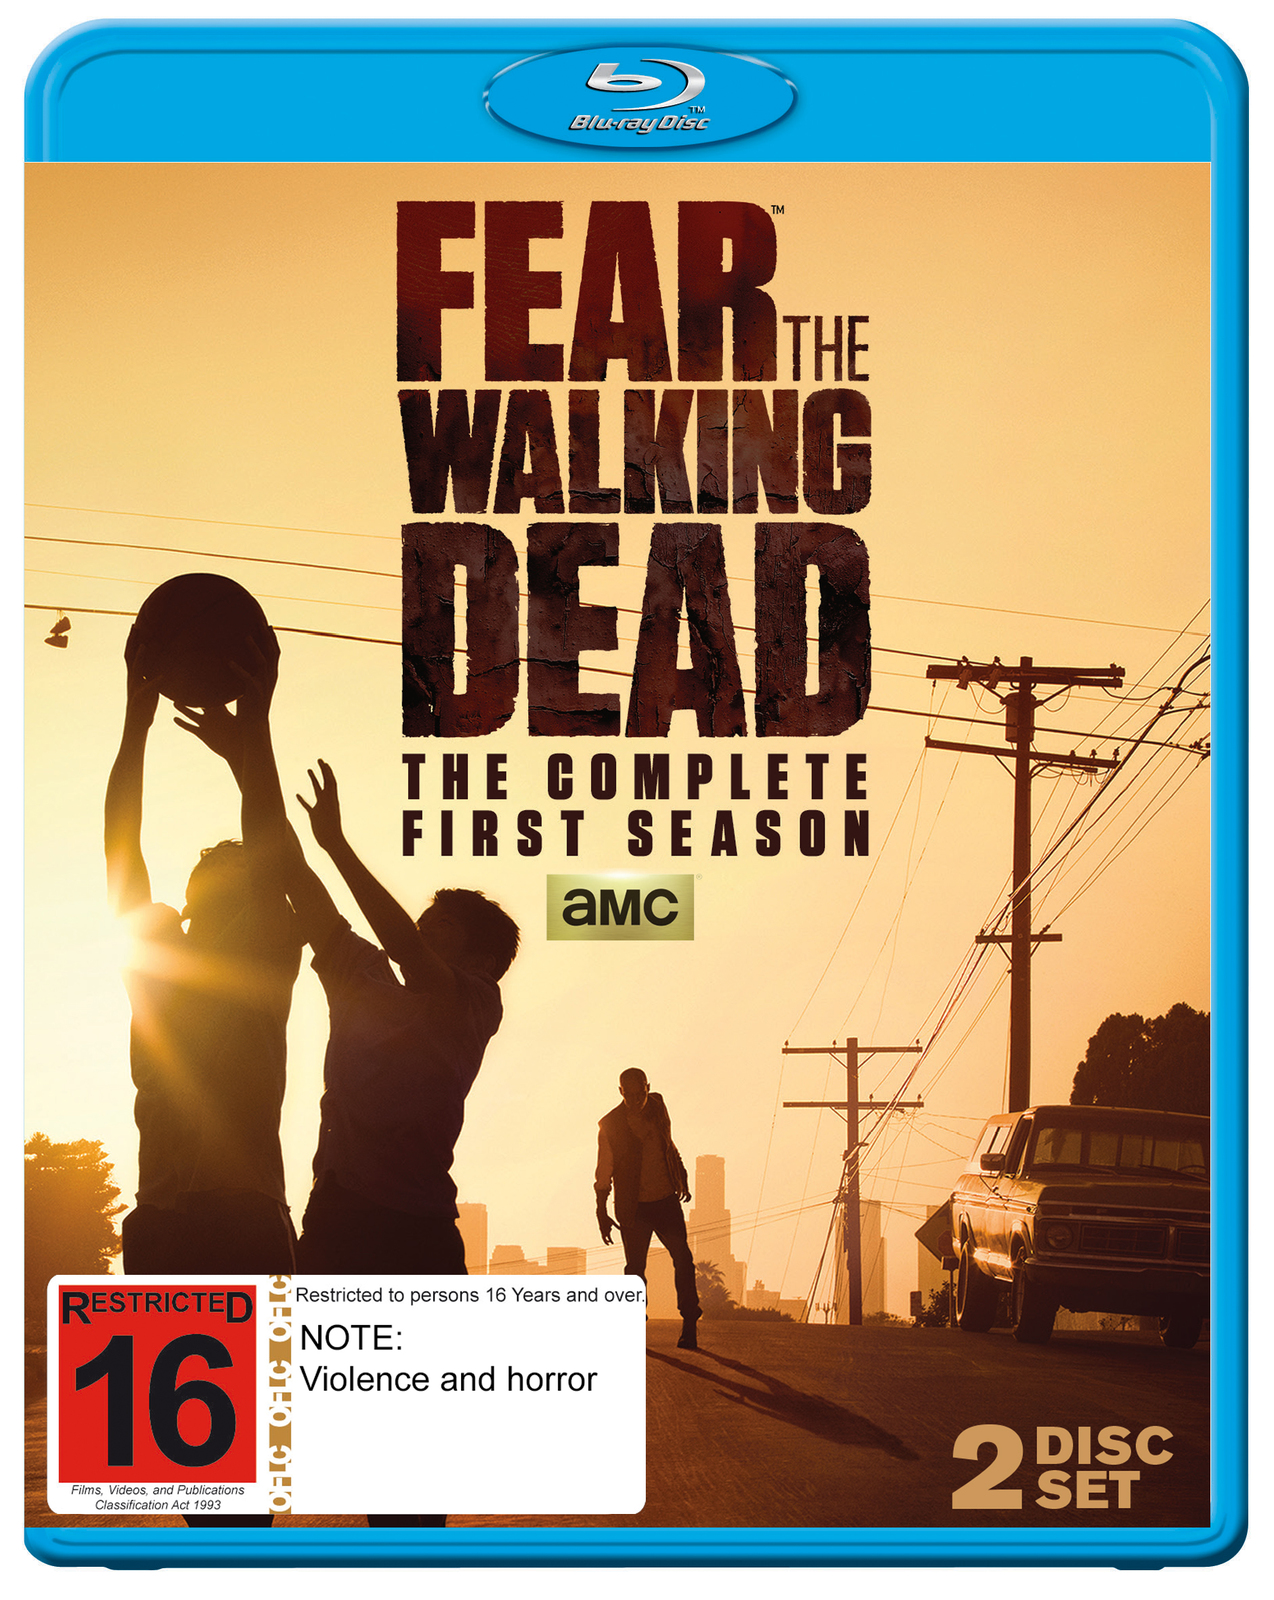 Fear The Walking Dead - The Complete First Season on Blu-ray image